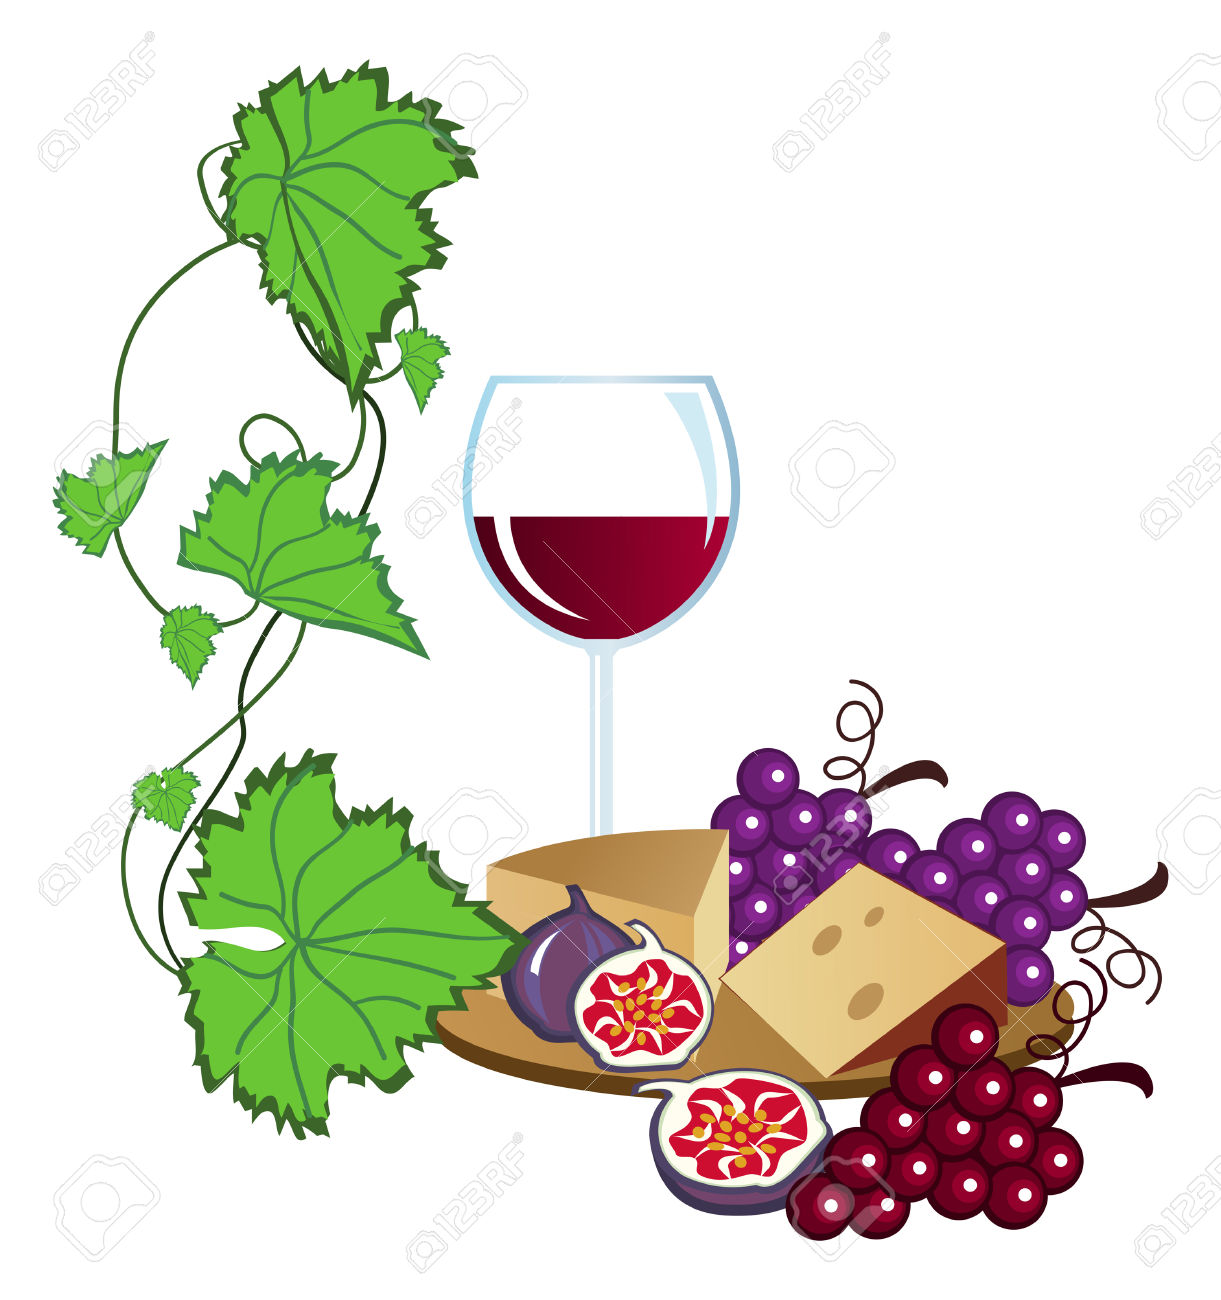 Clip-arts Of Wine, Fruits And Cheese Sto-Clip-arts of wine, fruits and cheese Stock Vector - 5275769-3